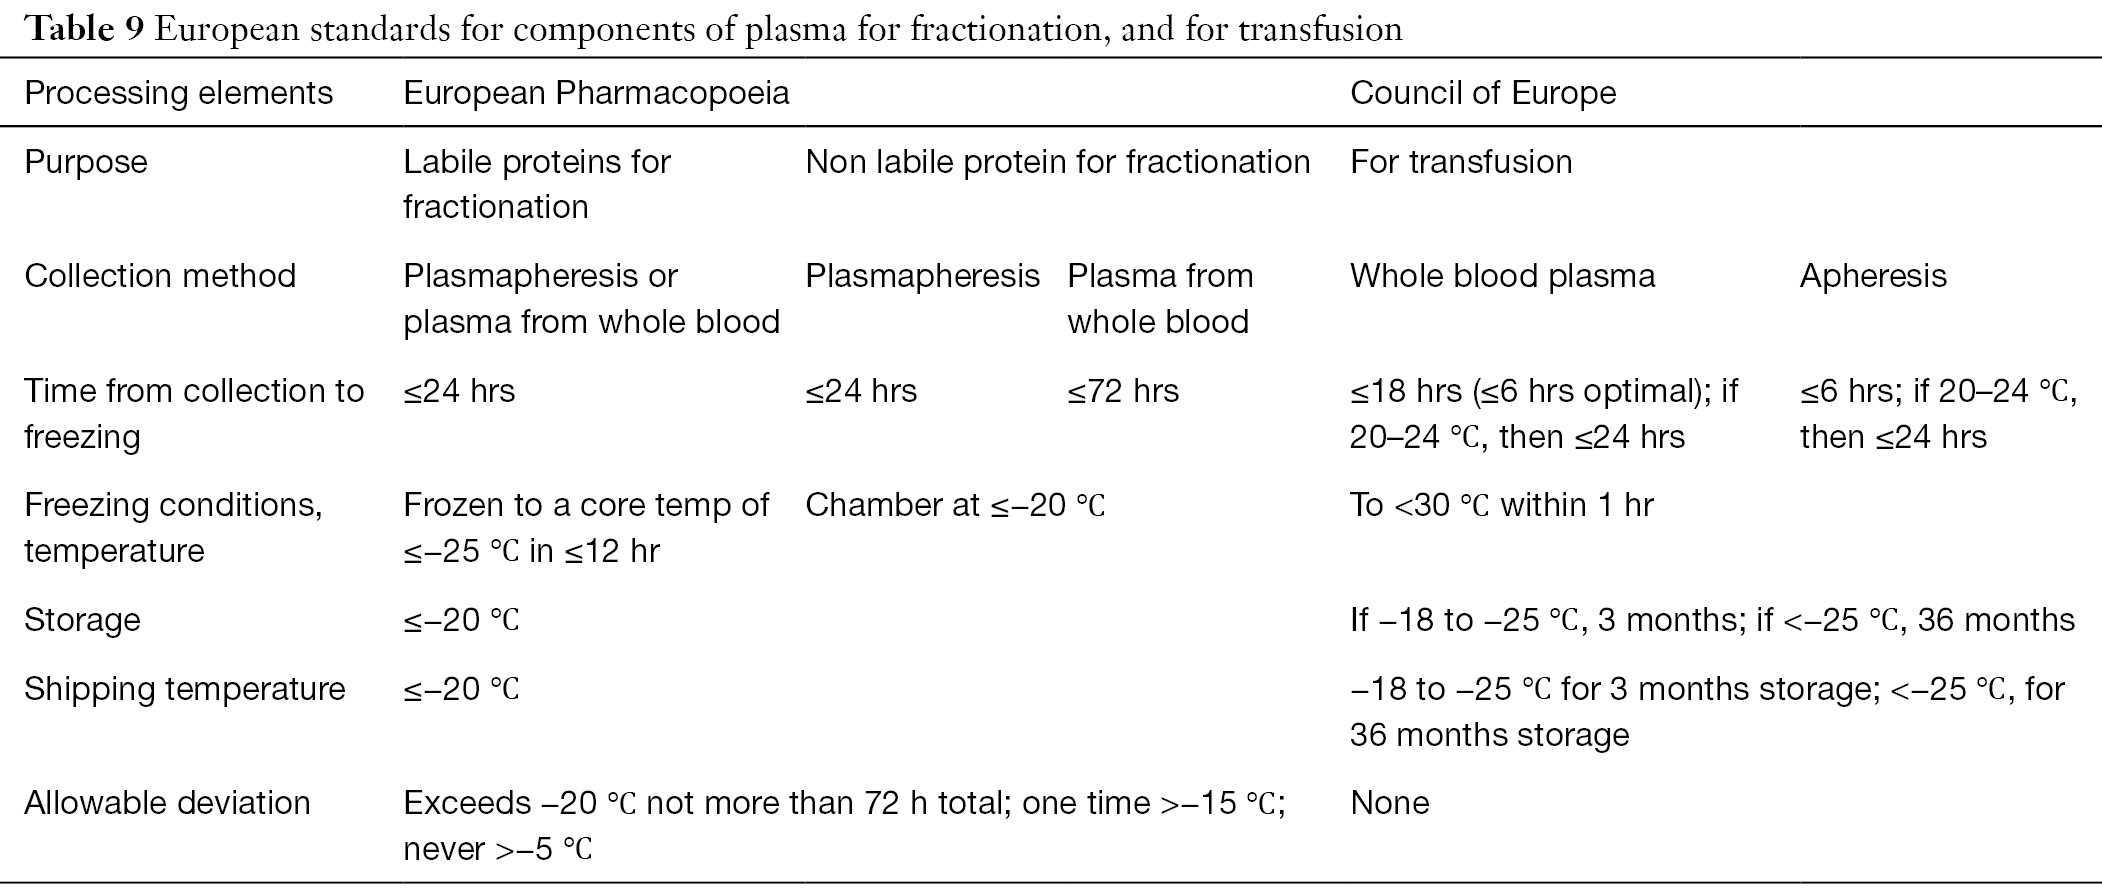 Regulation of plasma for fractionation in the United States